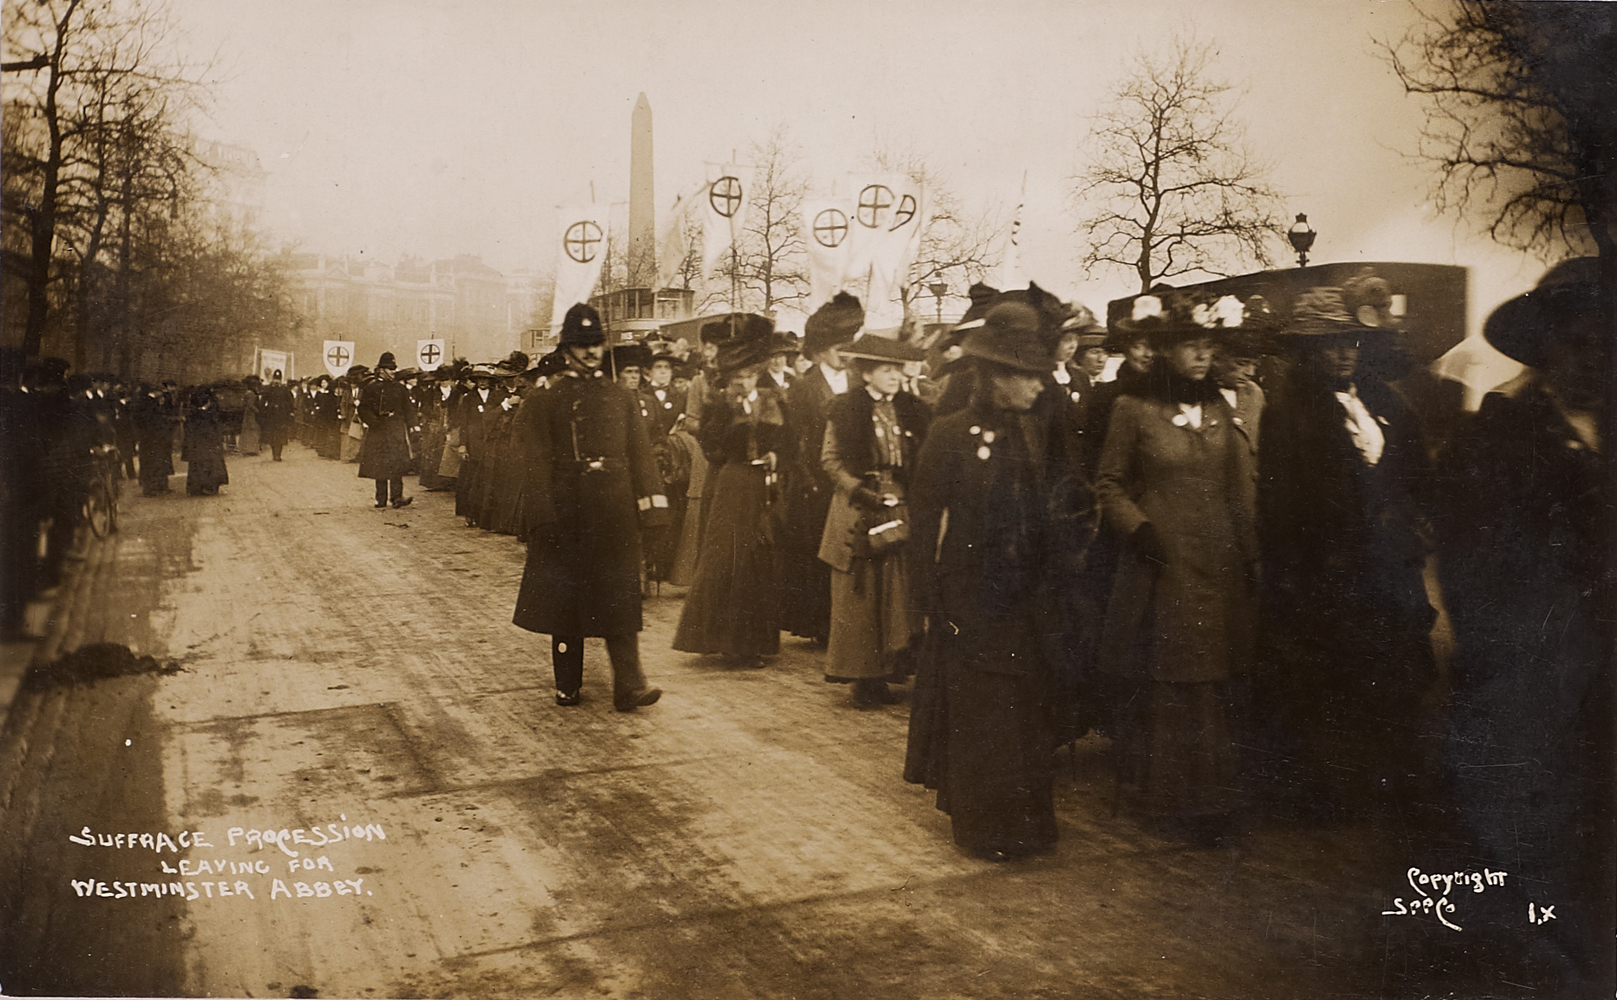 Postcard, Suffrage procession leaving for Westminster Abbey, 14 November 1910